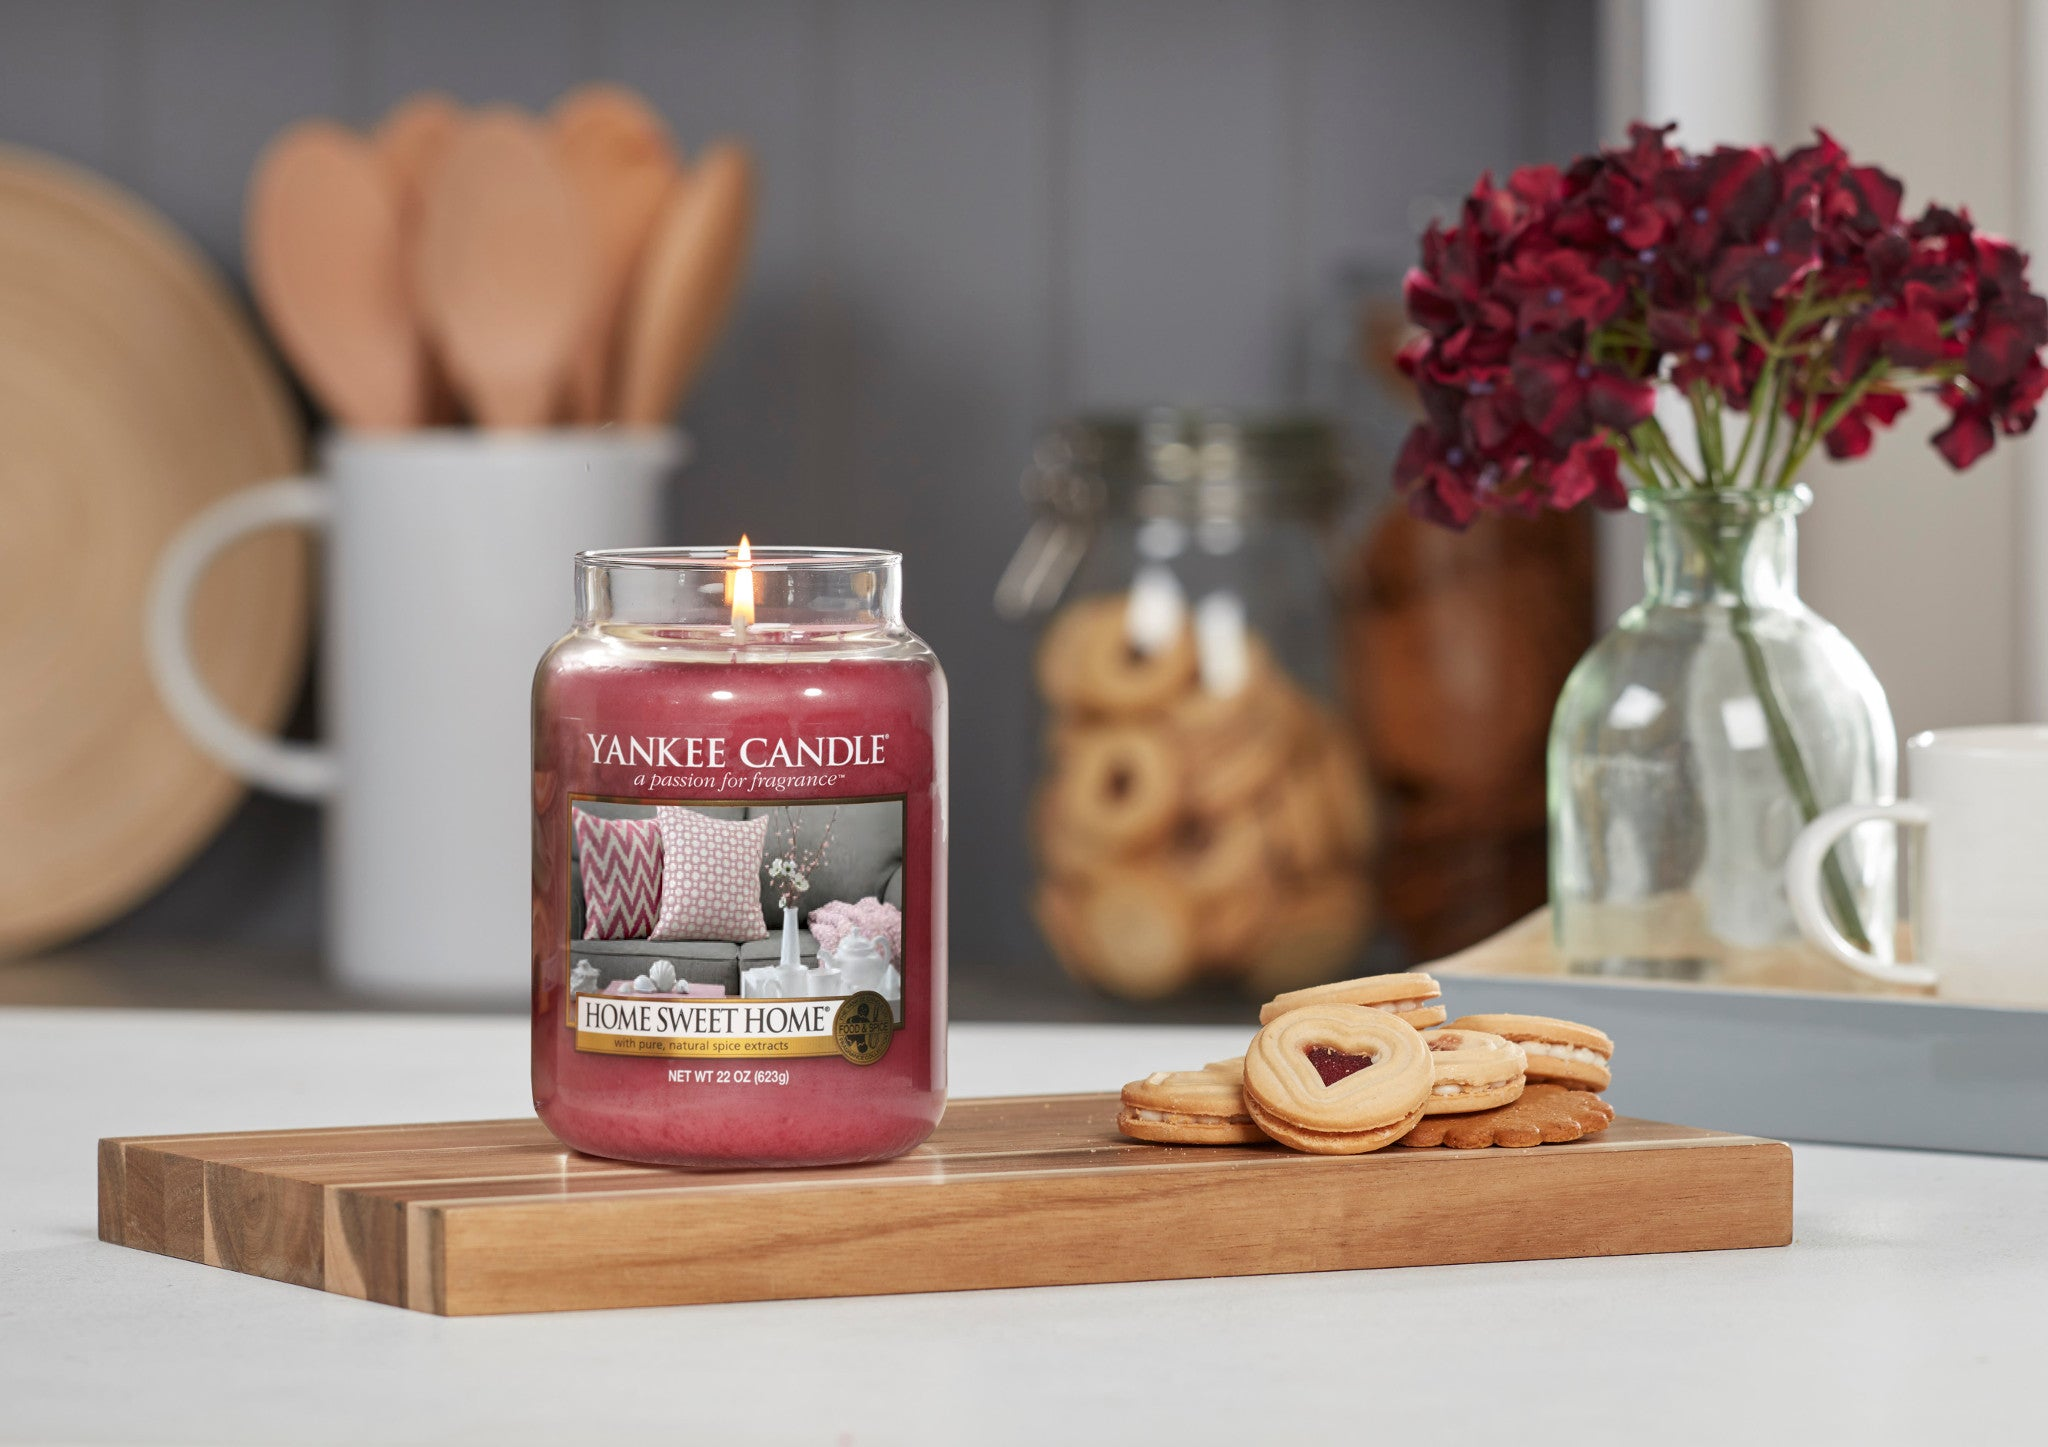 HOME SWEET HOME -Yankee Candle- Giara Piccola